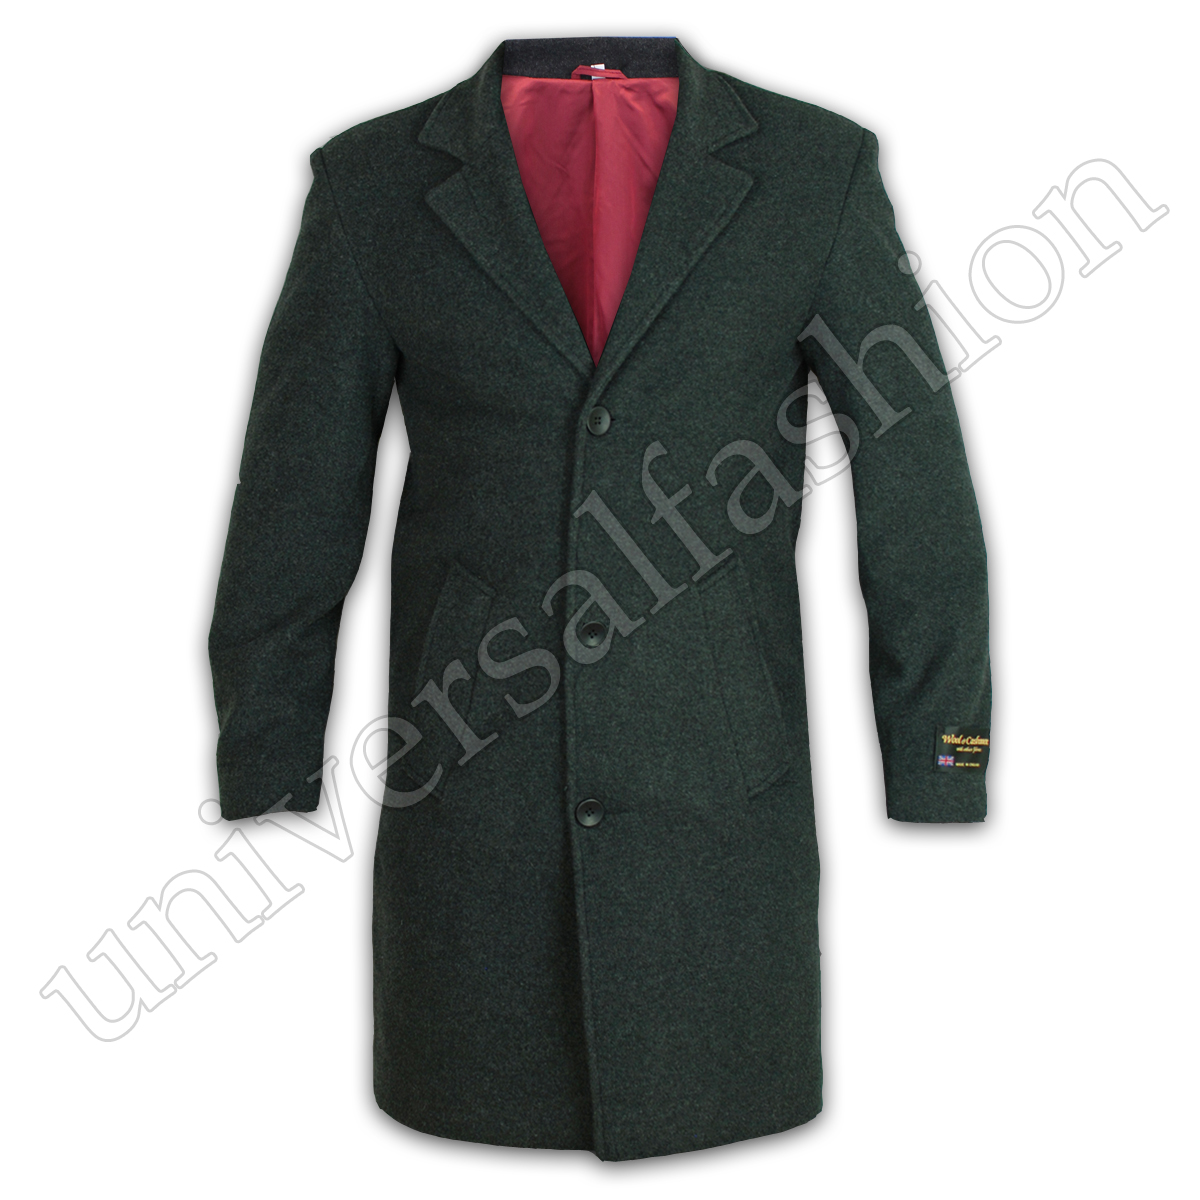 Mens-Wool-Cashmere-Coat-Jacket-Outerwear-Trench-Overcoat-Warm-Winter-Lined-New thumbnail 4